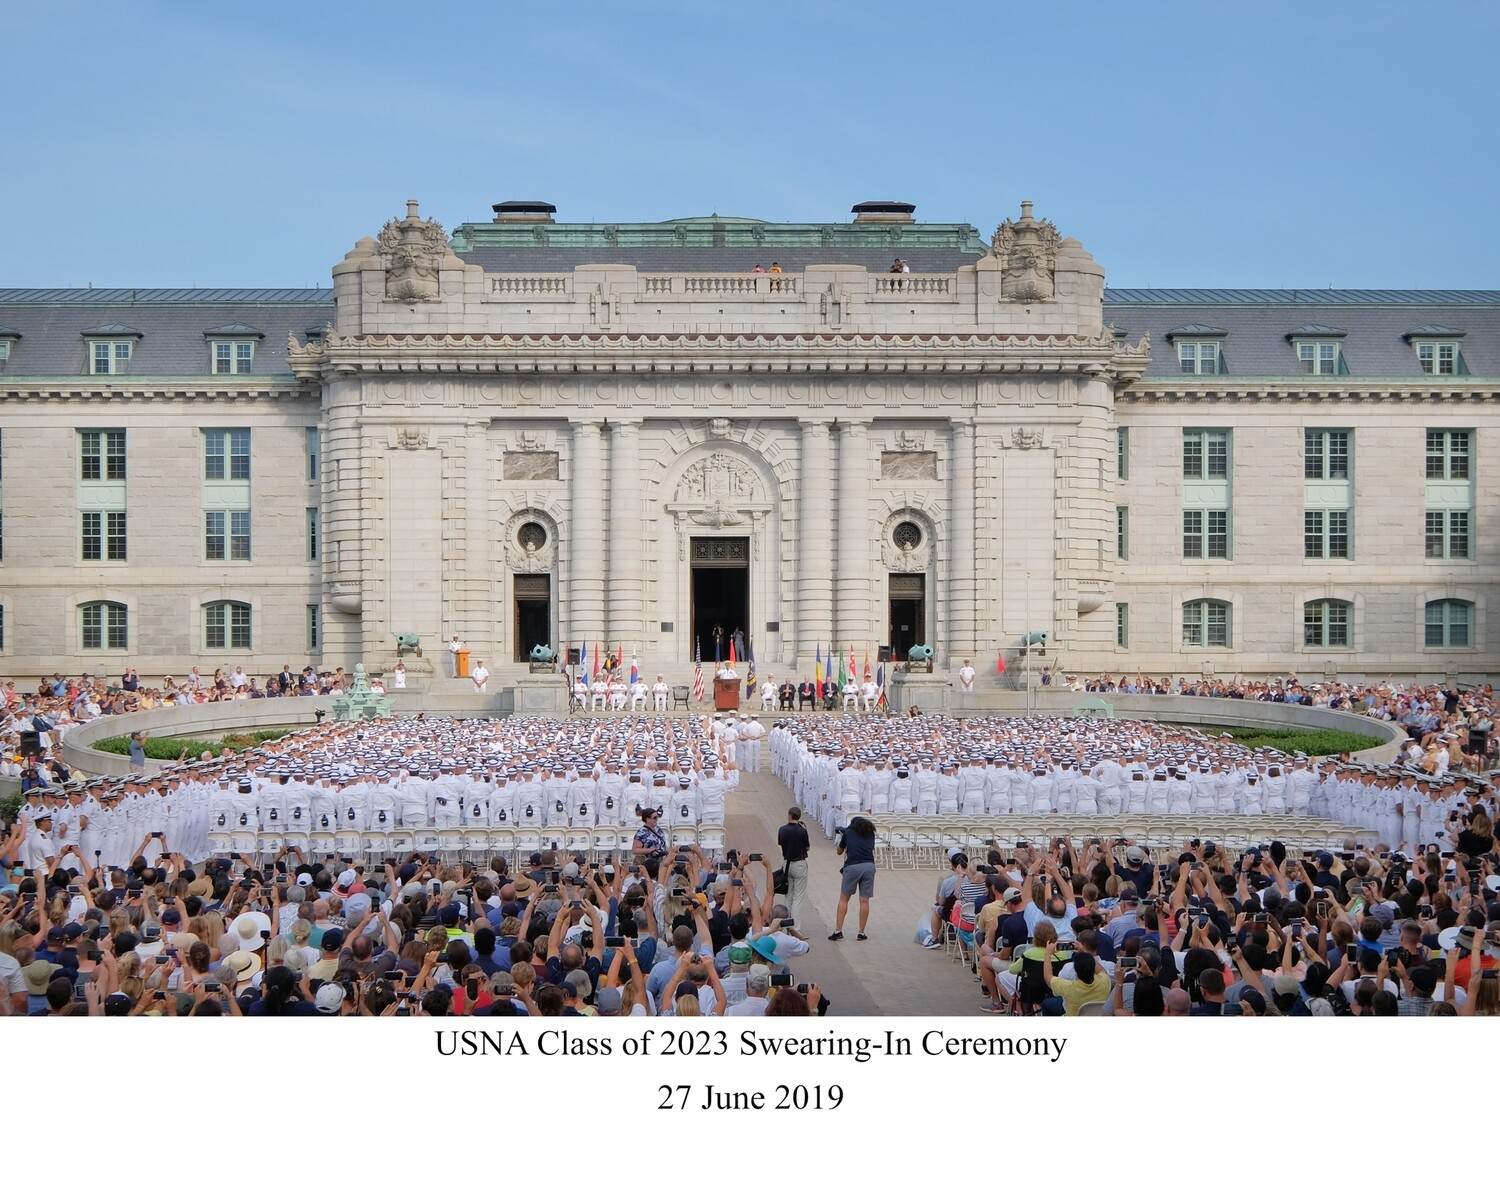 Class of 2023 Swearing-In Ceremony